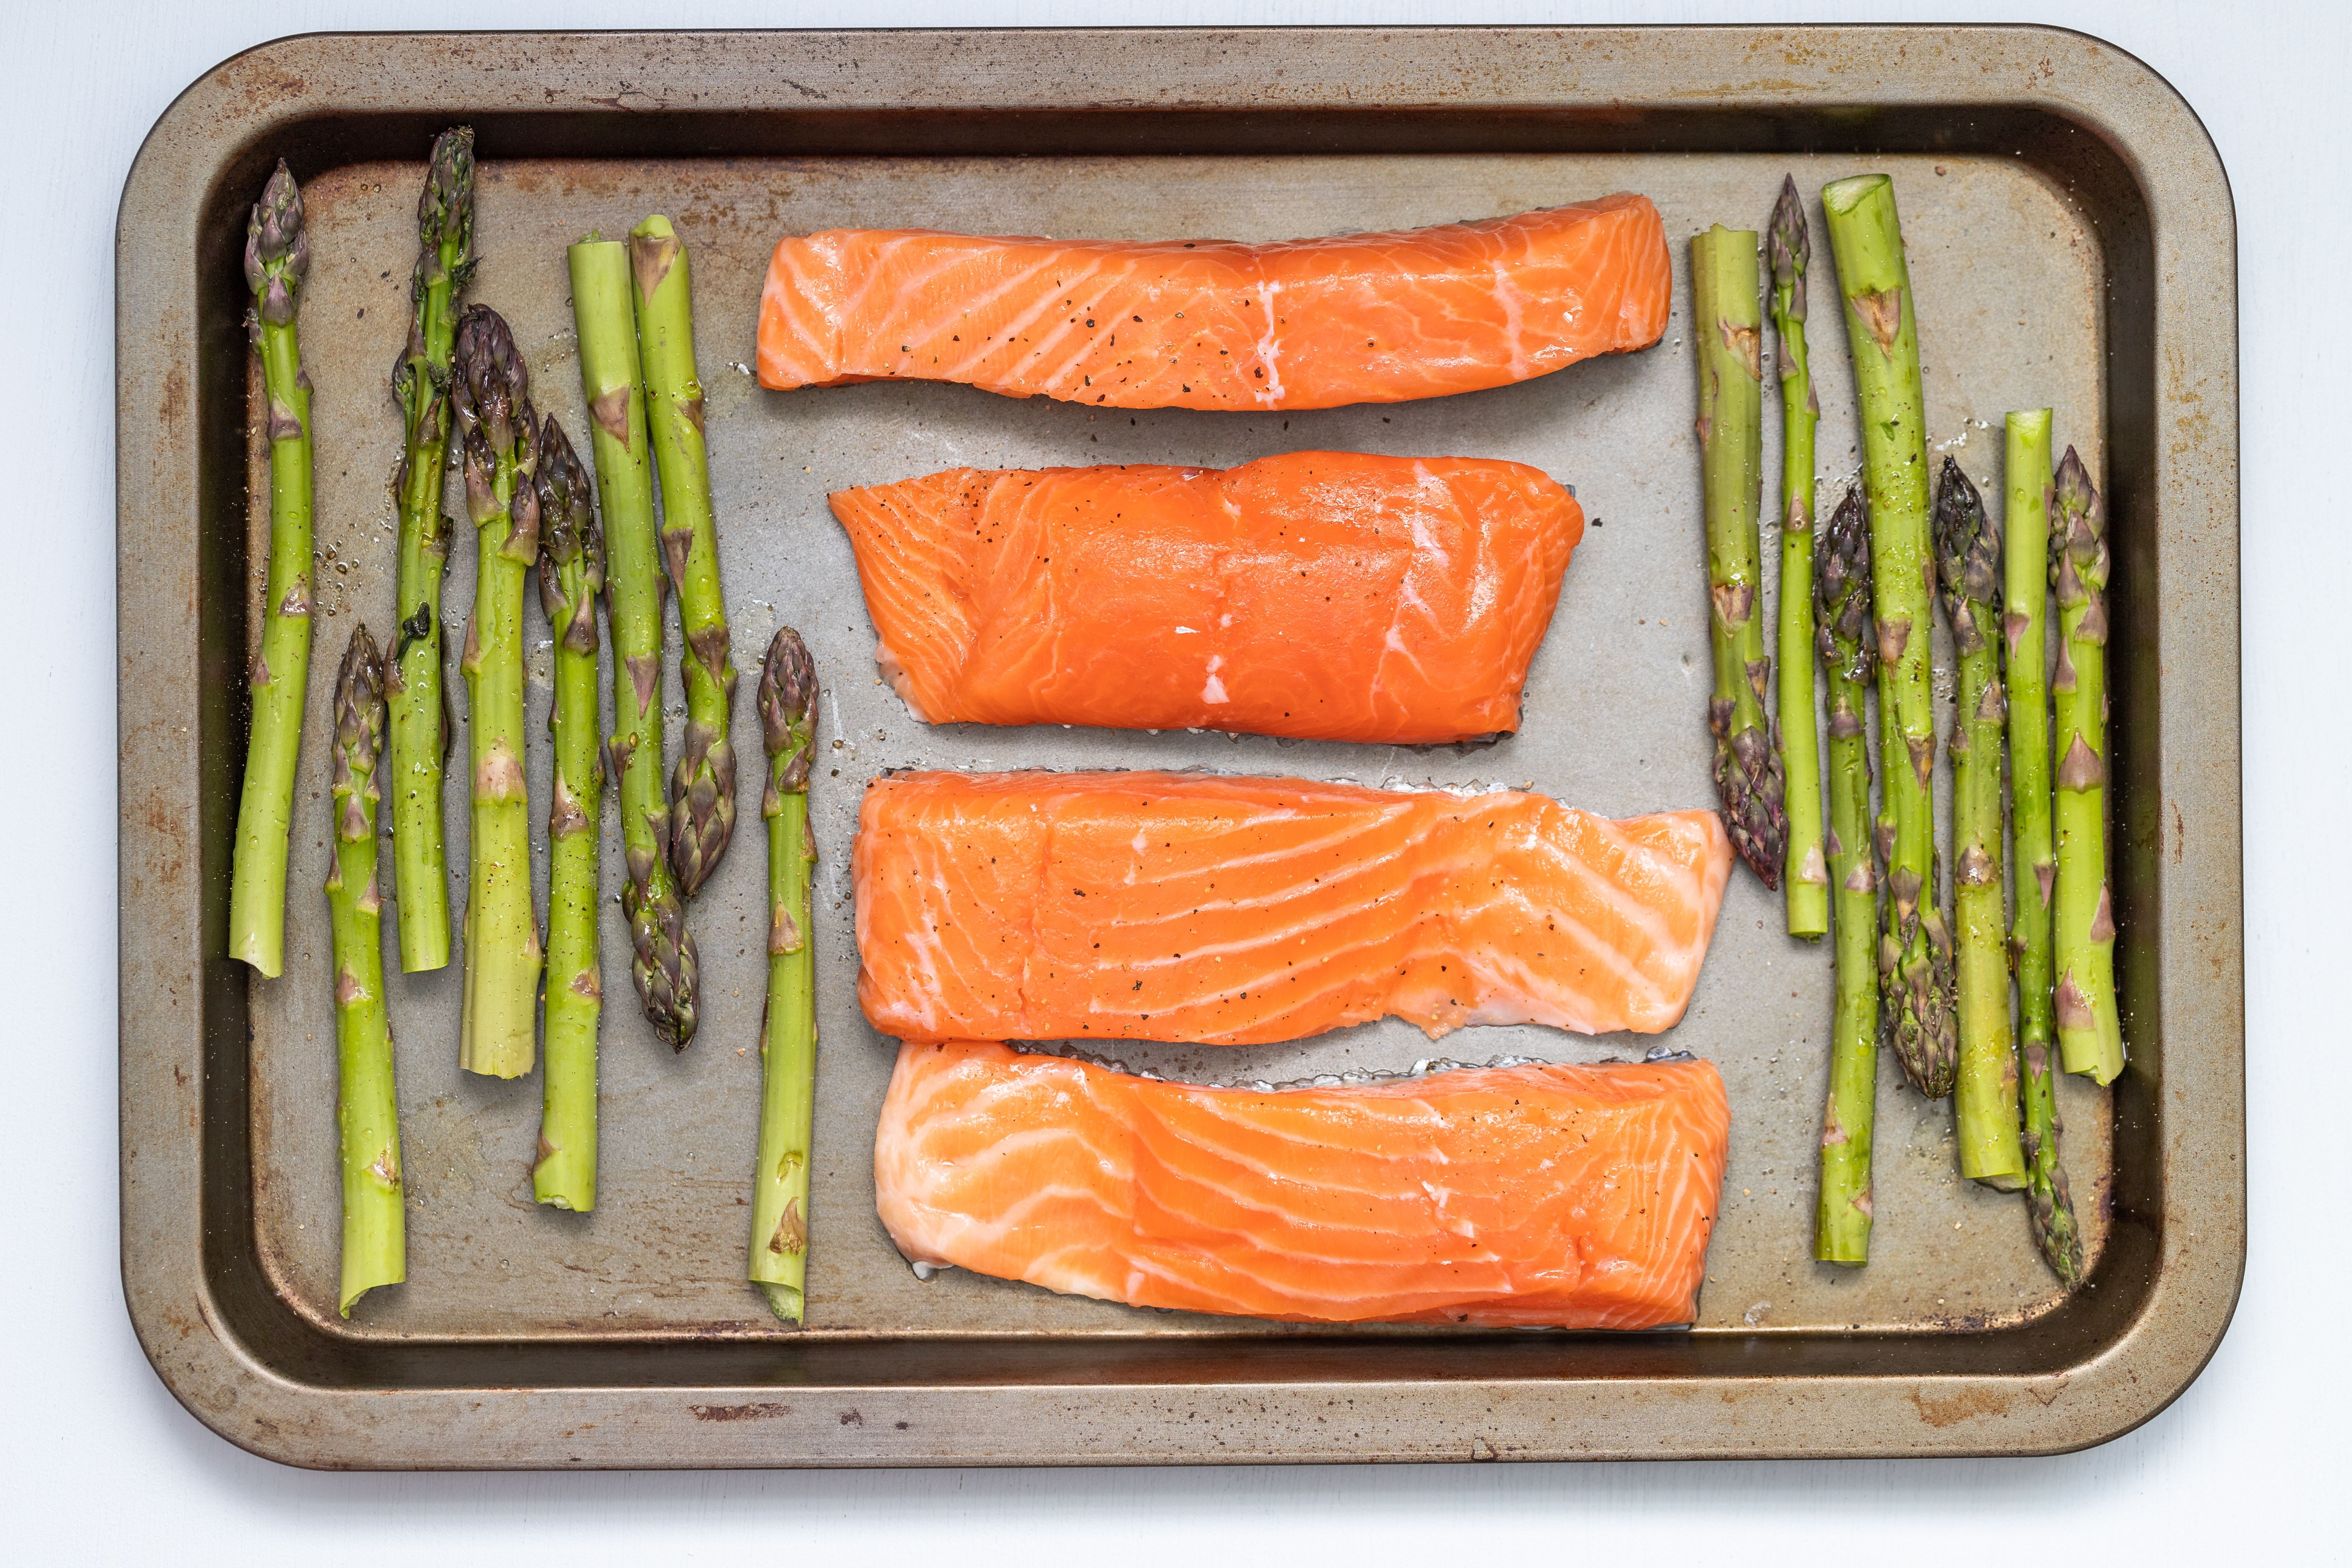 Is salmon ok for feeding your dog?